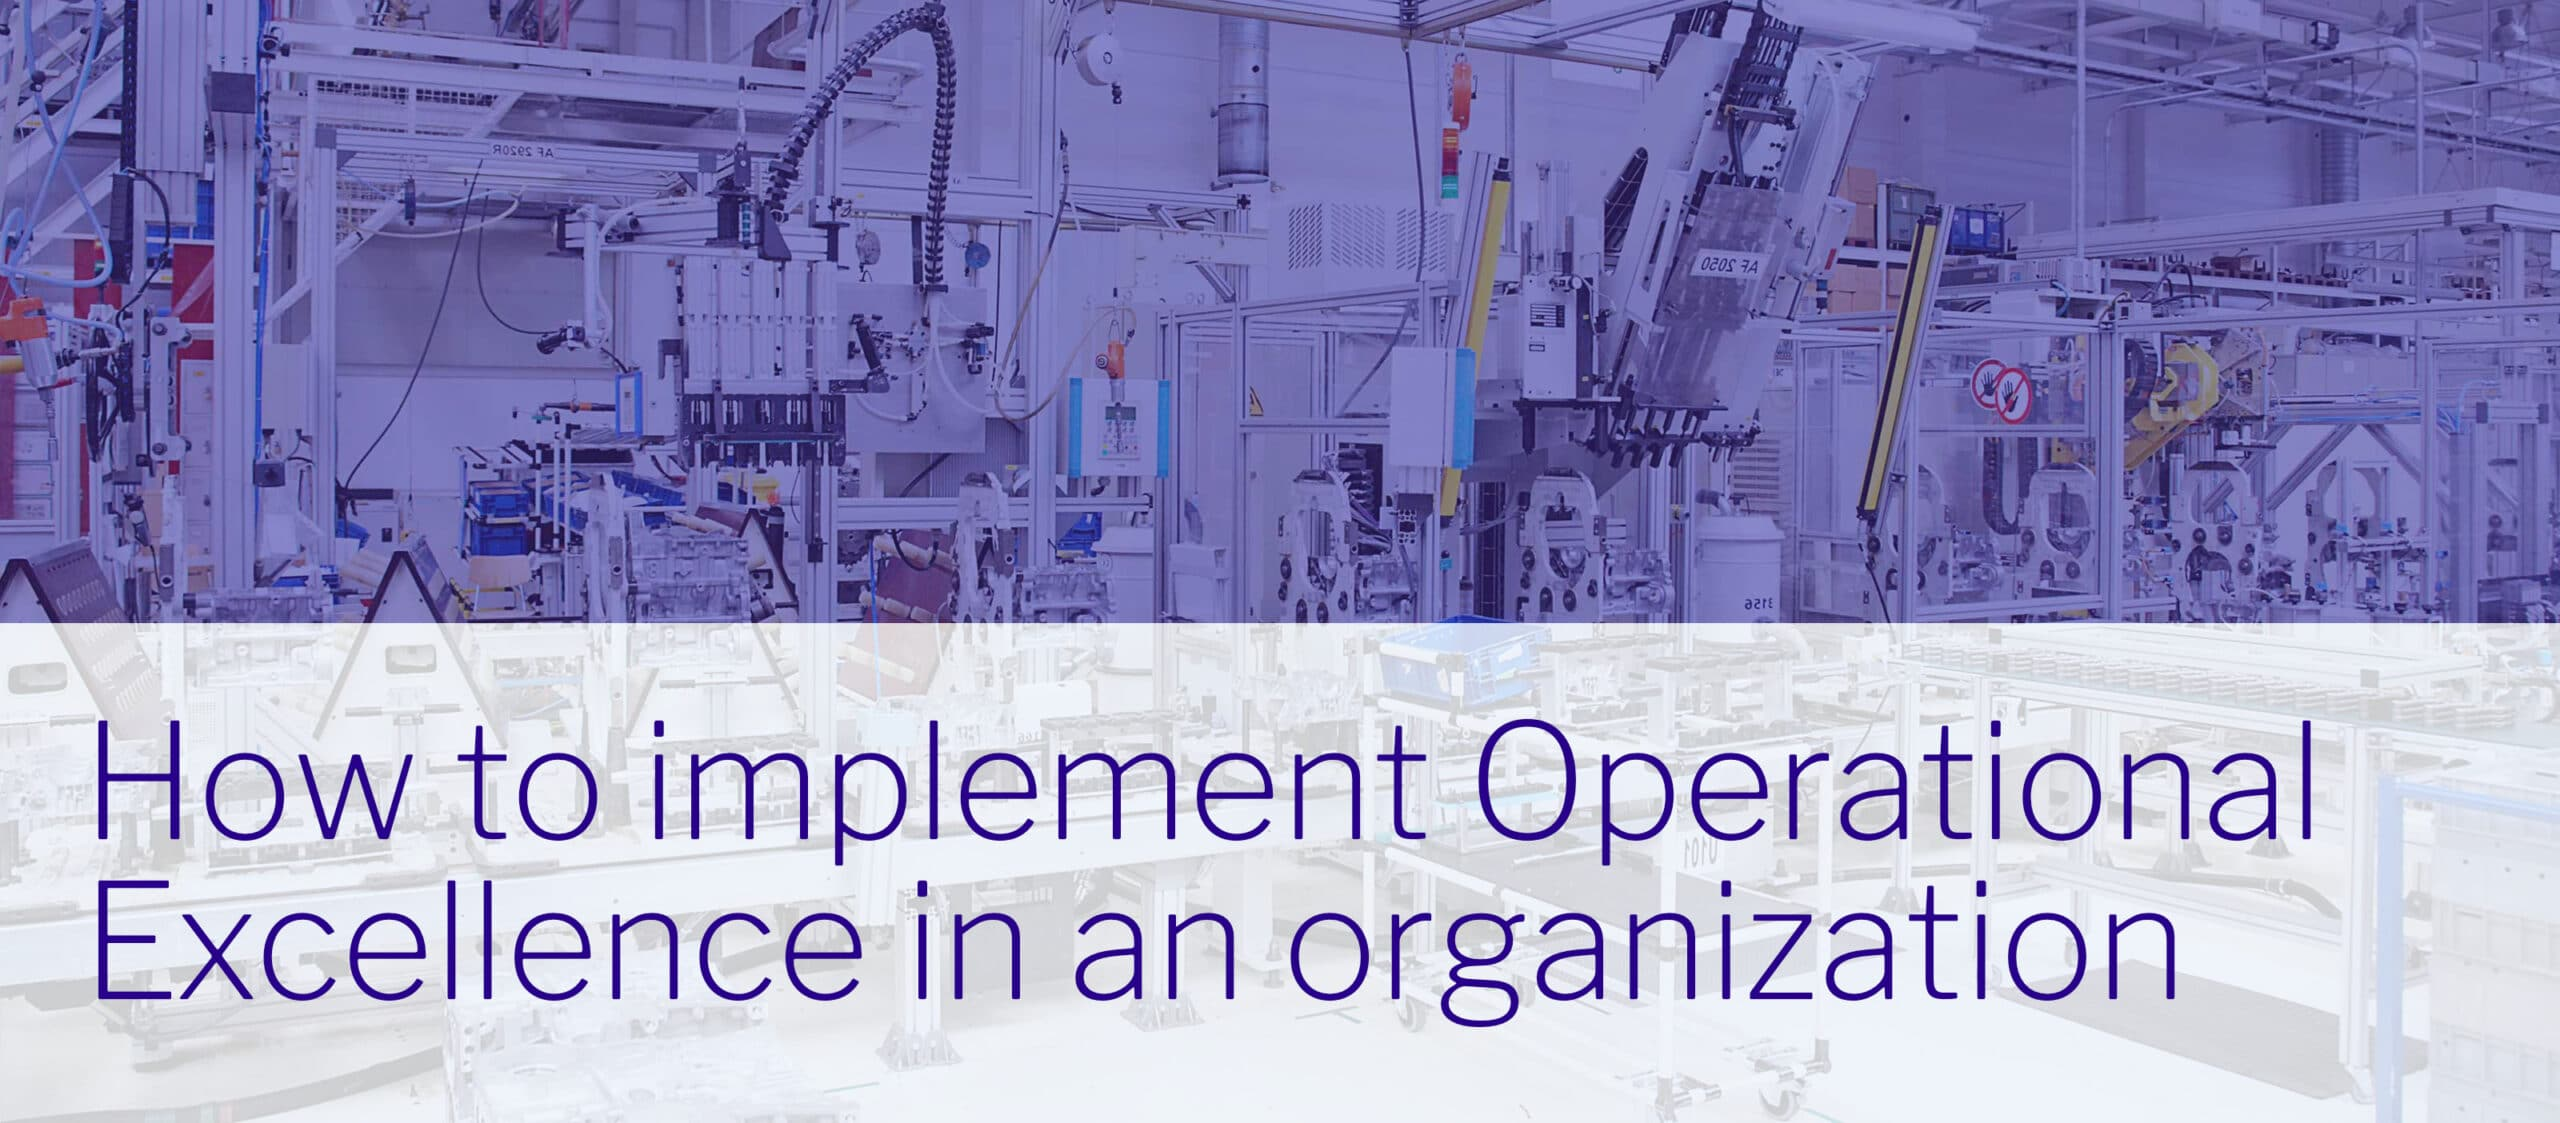 How to implement Operational Excellence in an organization